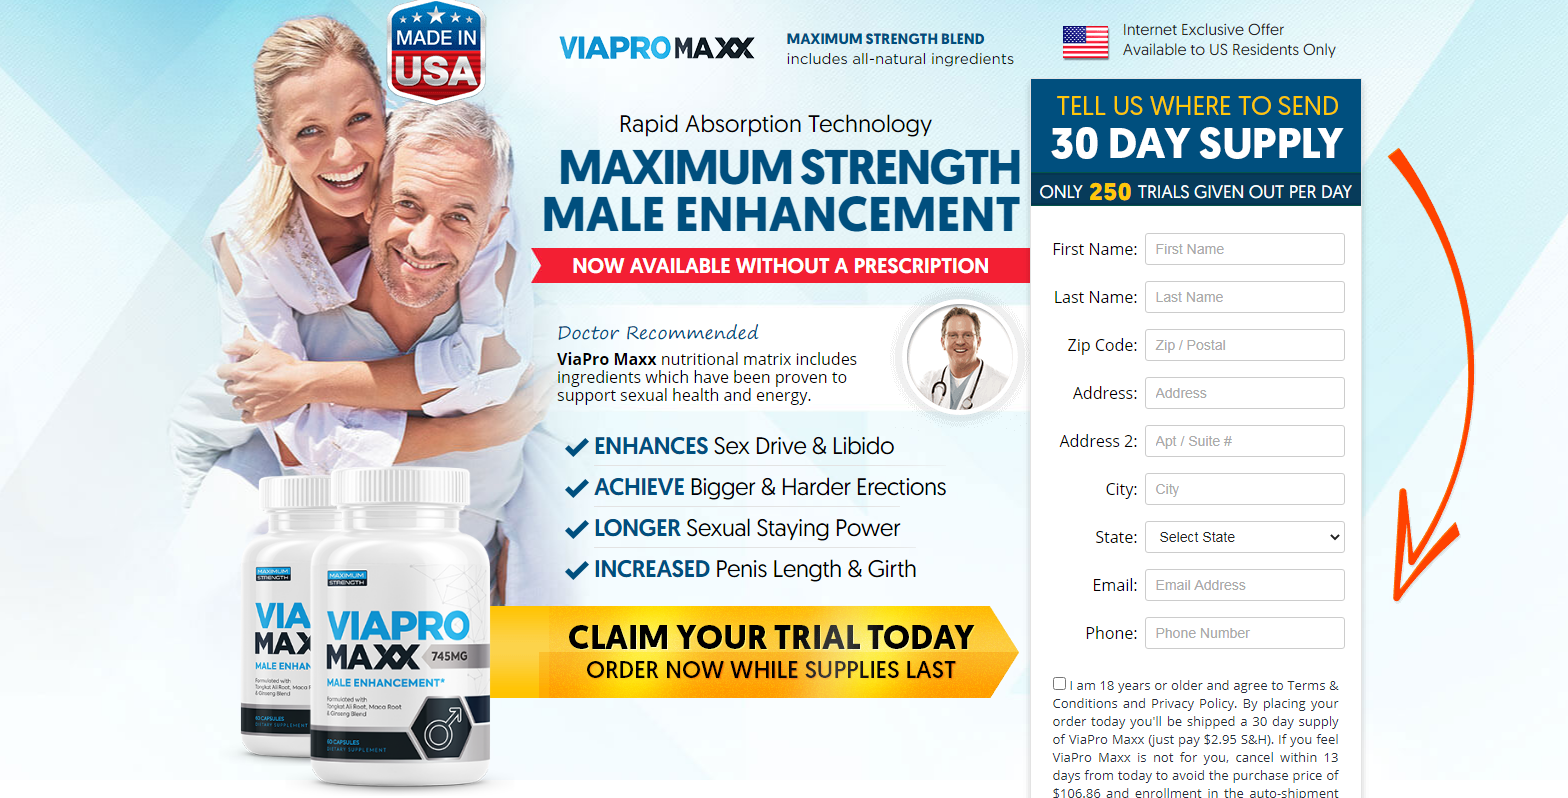 ViaPro Maxx [ViaPro Maxx Male Enhancement] 6 You Thing About Now